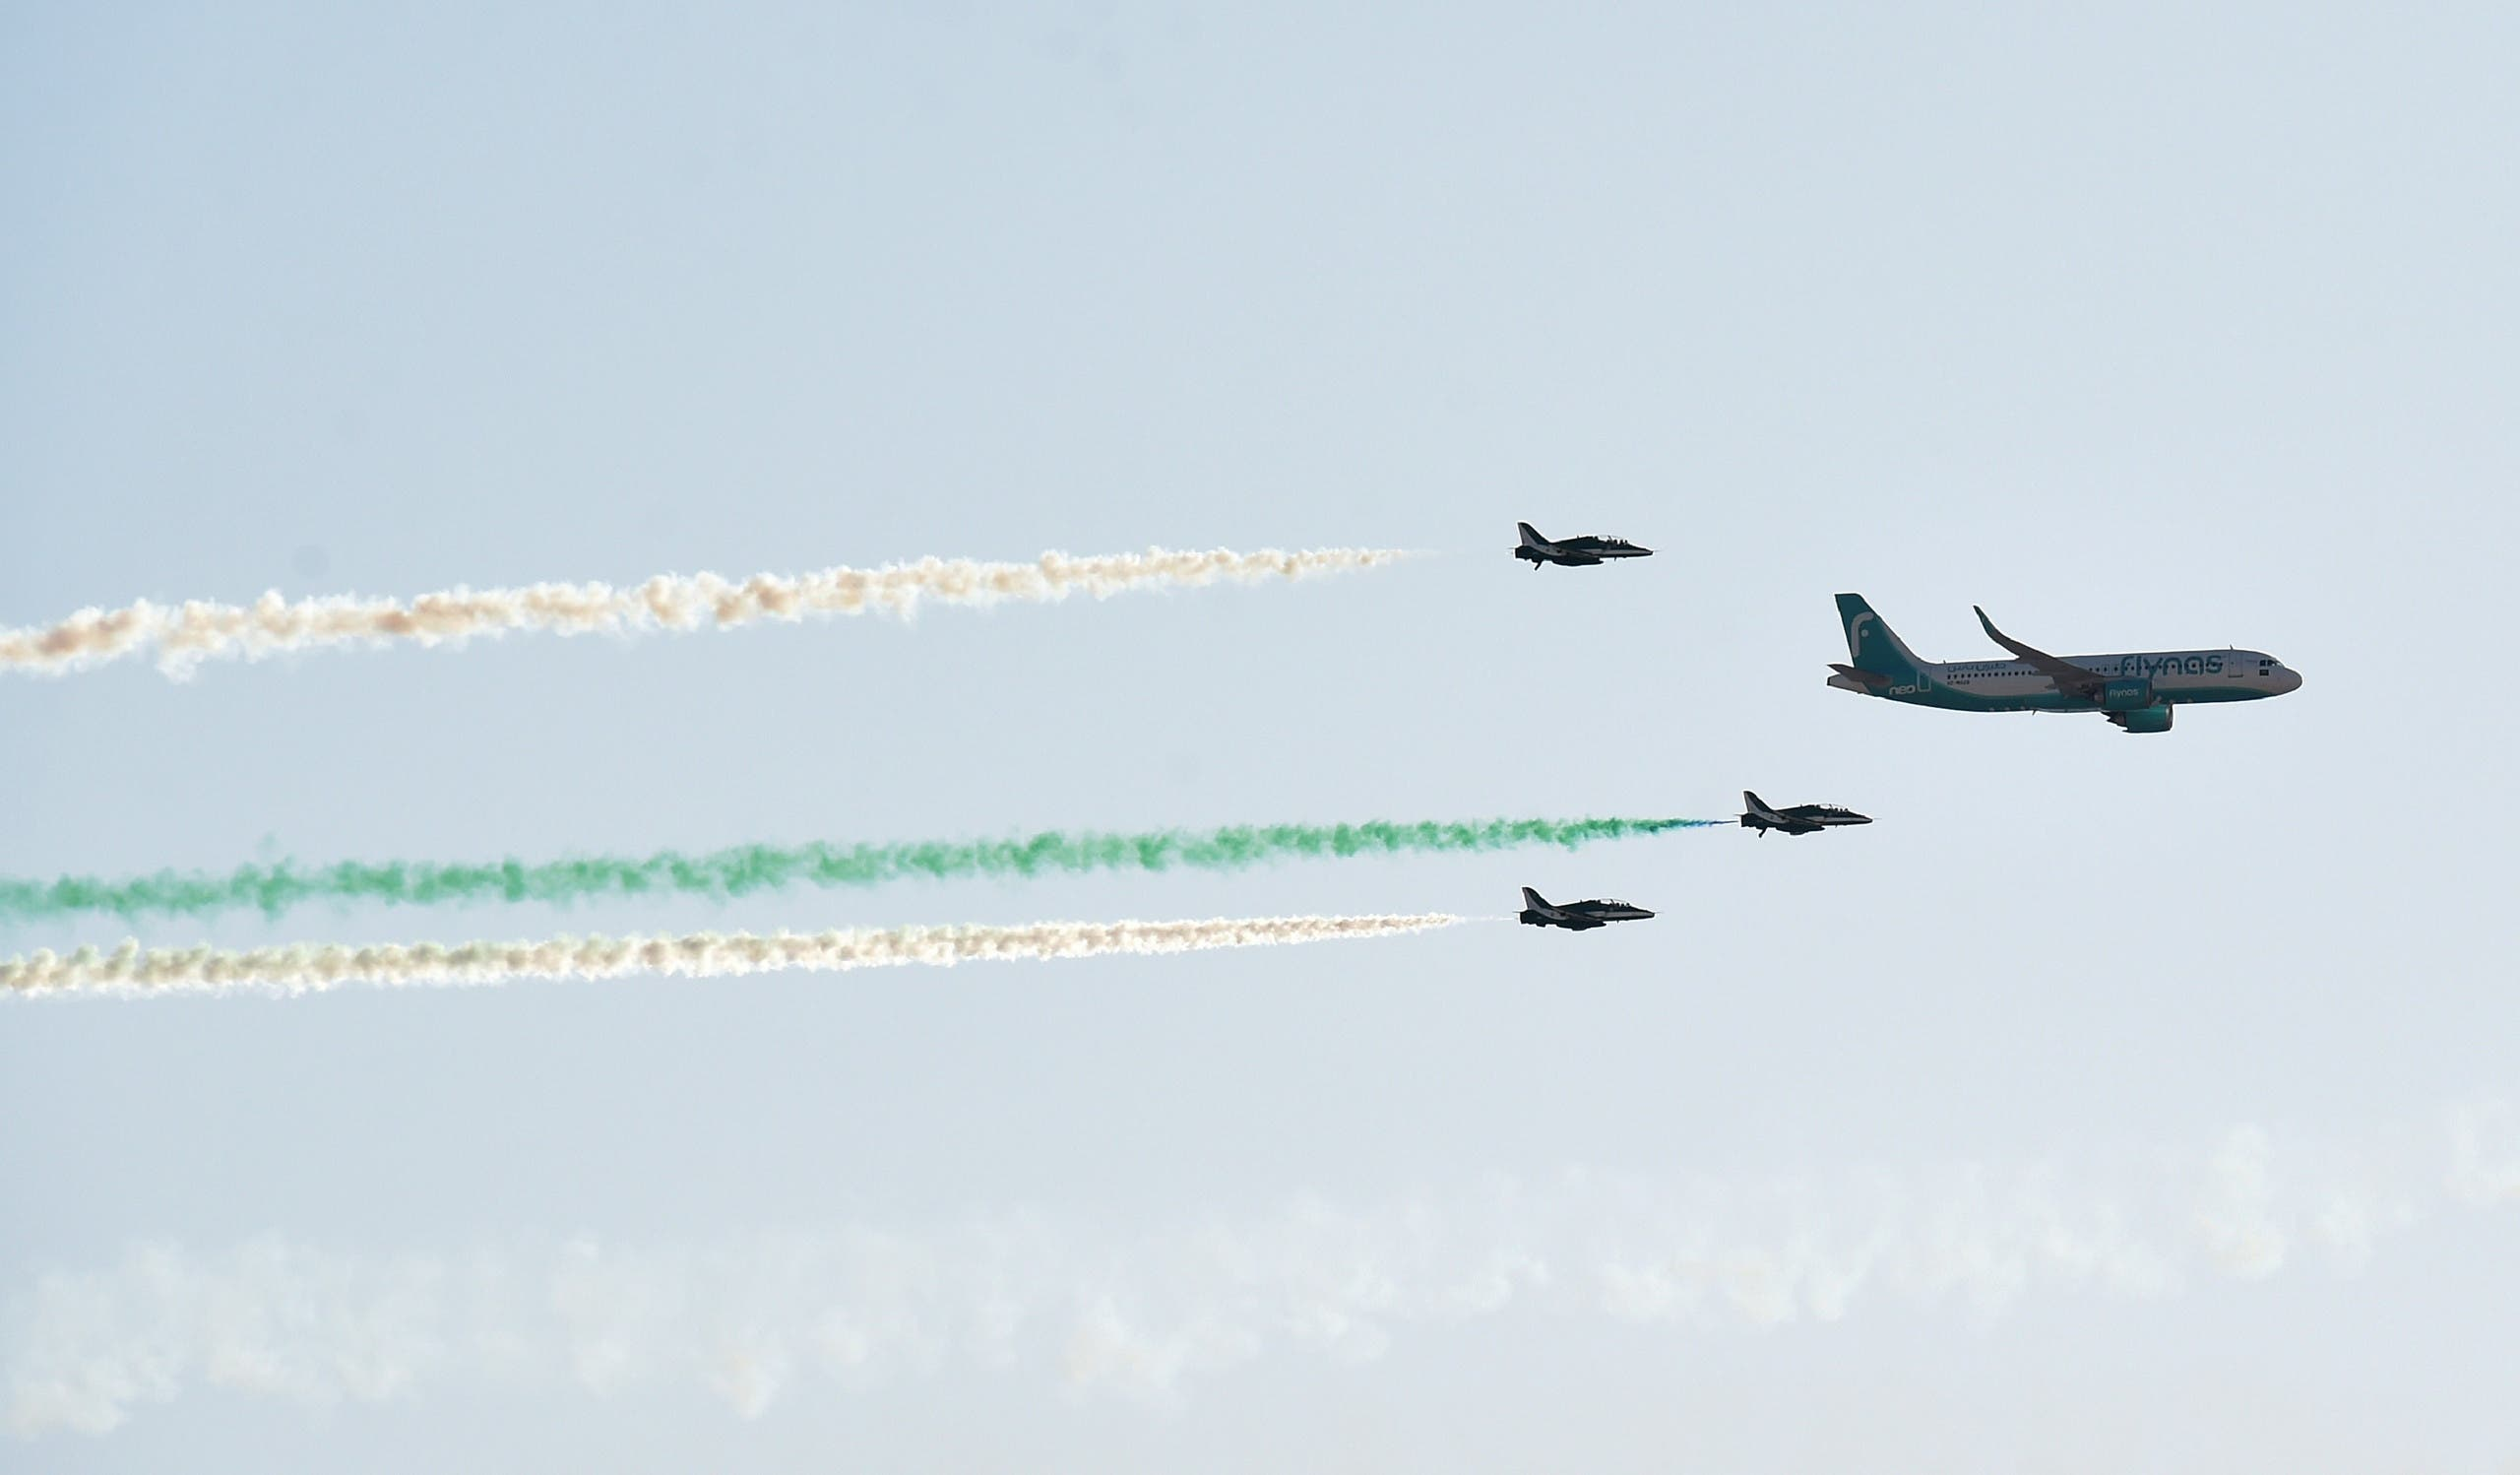 Civil and military aircrafts fly over Riyadh during celebrations marking Saudi Arabi's 90th National Day on September 23, 2020. (AFP)